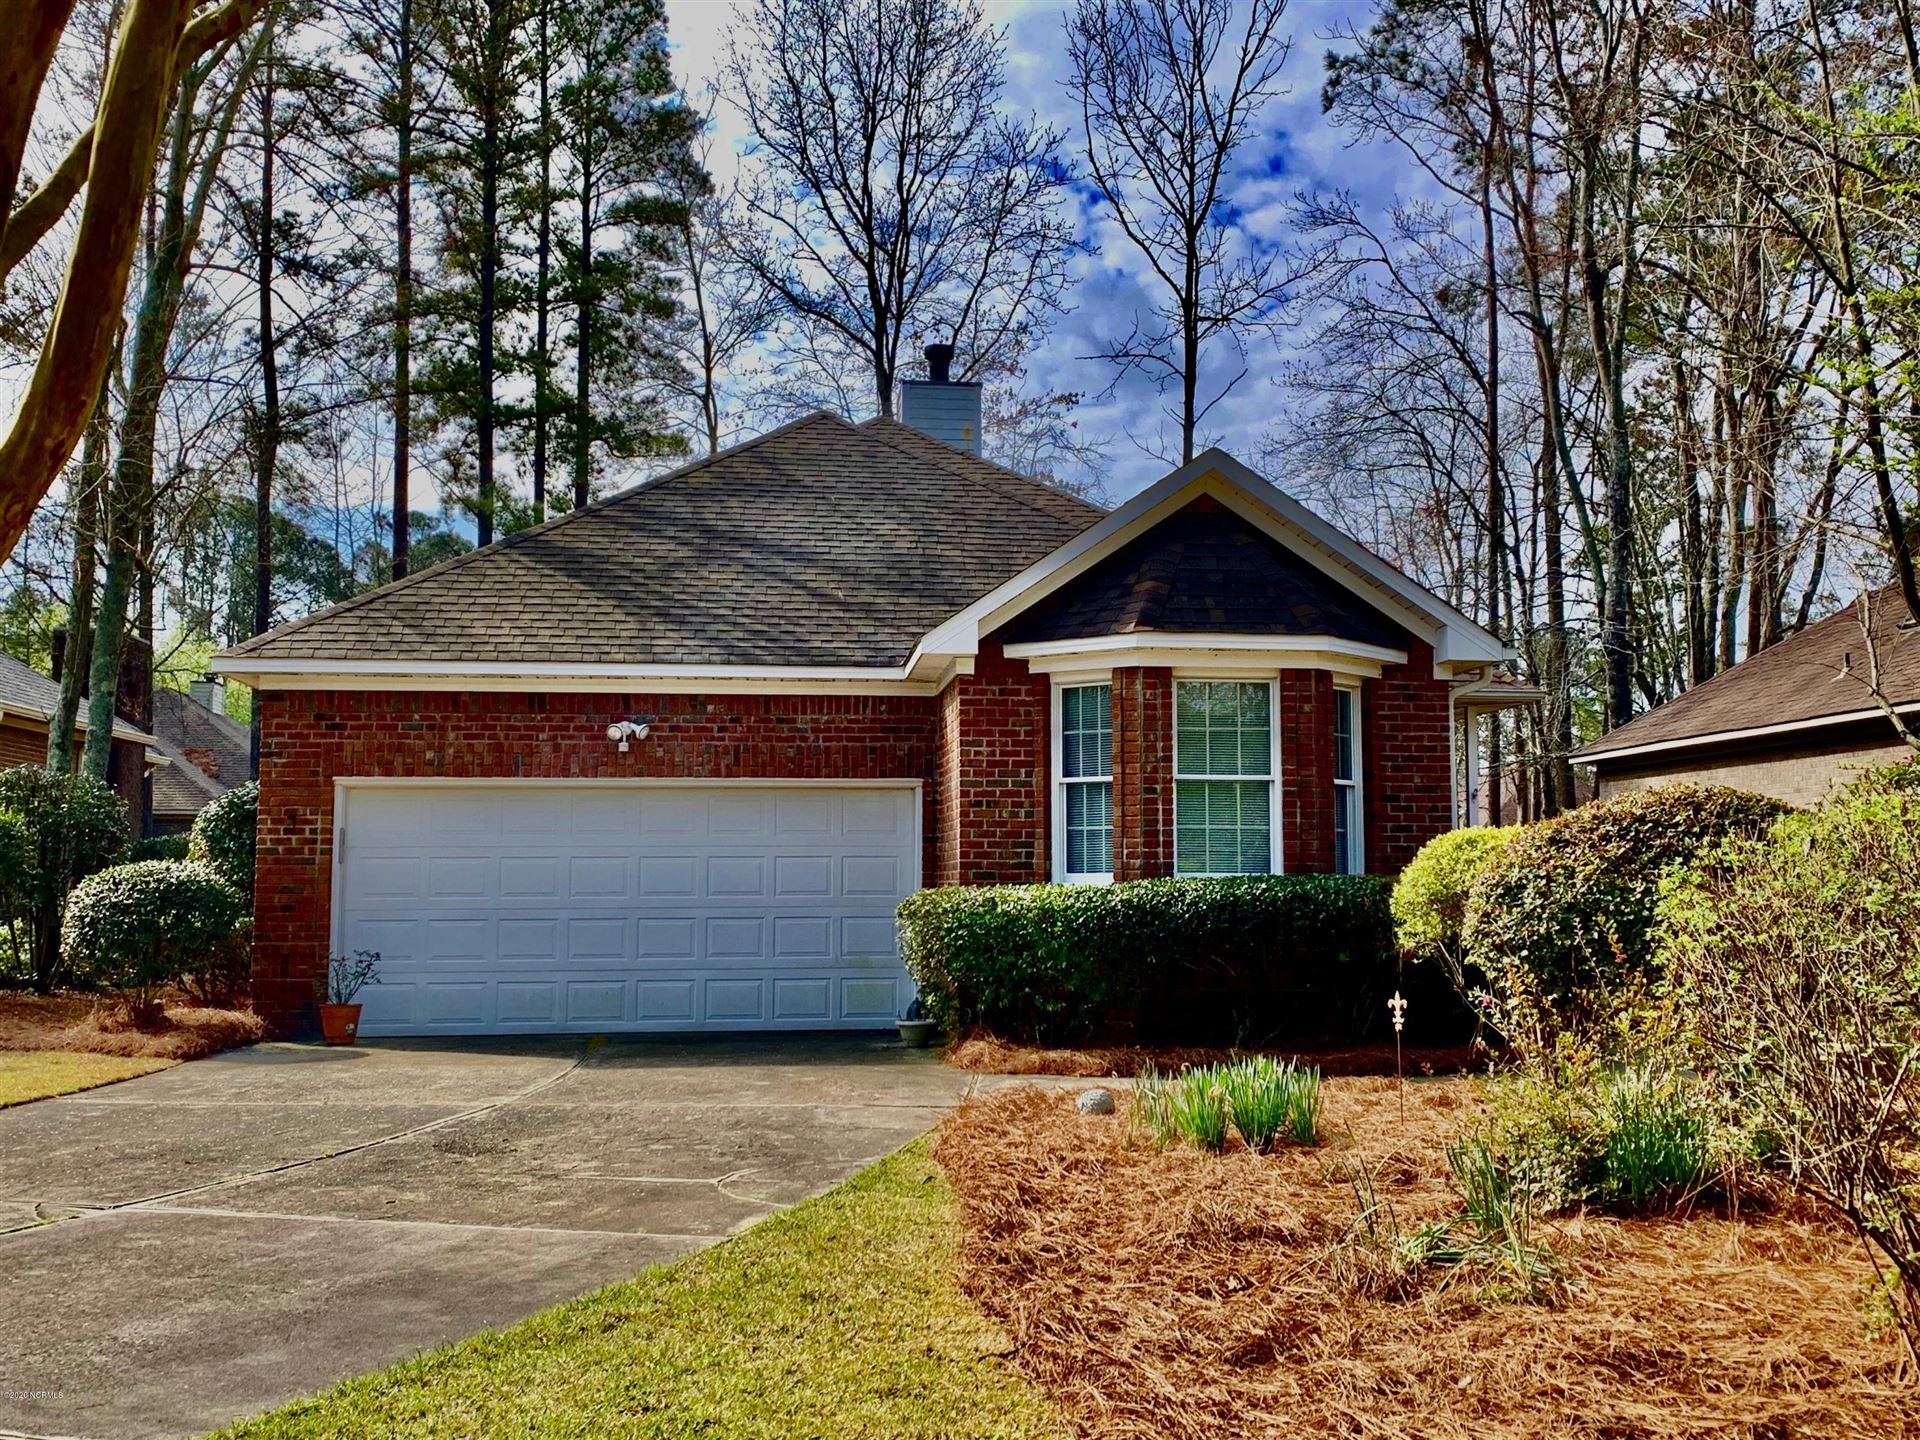 506 Evergreen Lane, New Bern, NC 28562 - #: 100210898